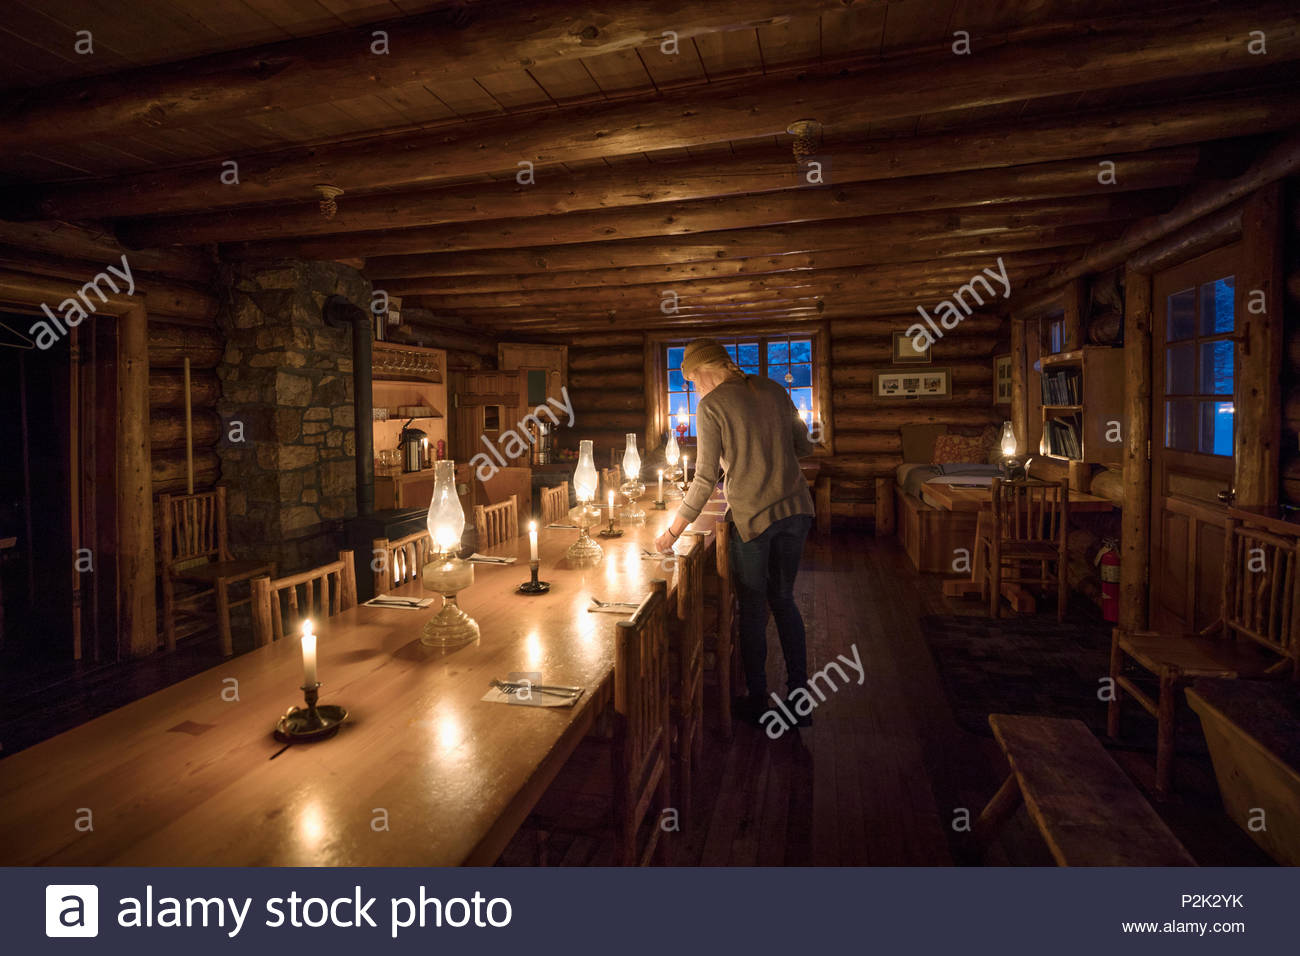 Woman preparing candlelight dining table in ski resort lodge - Stock Image